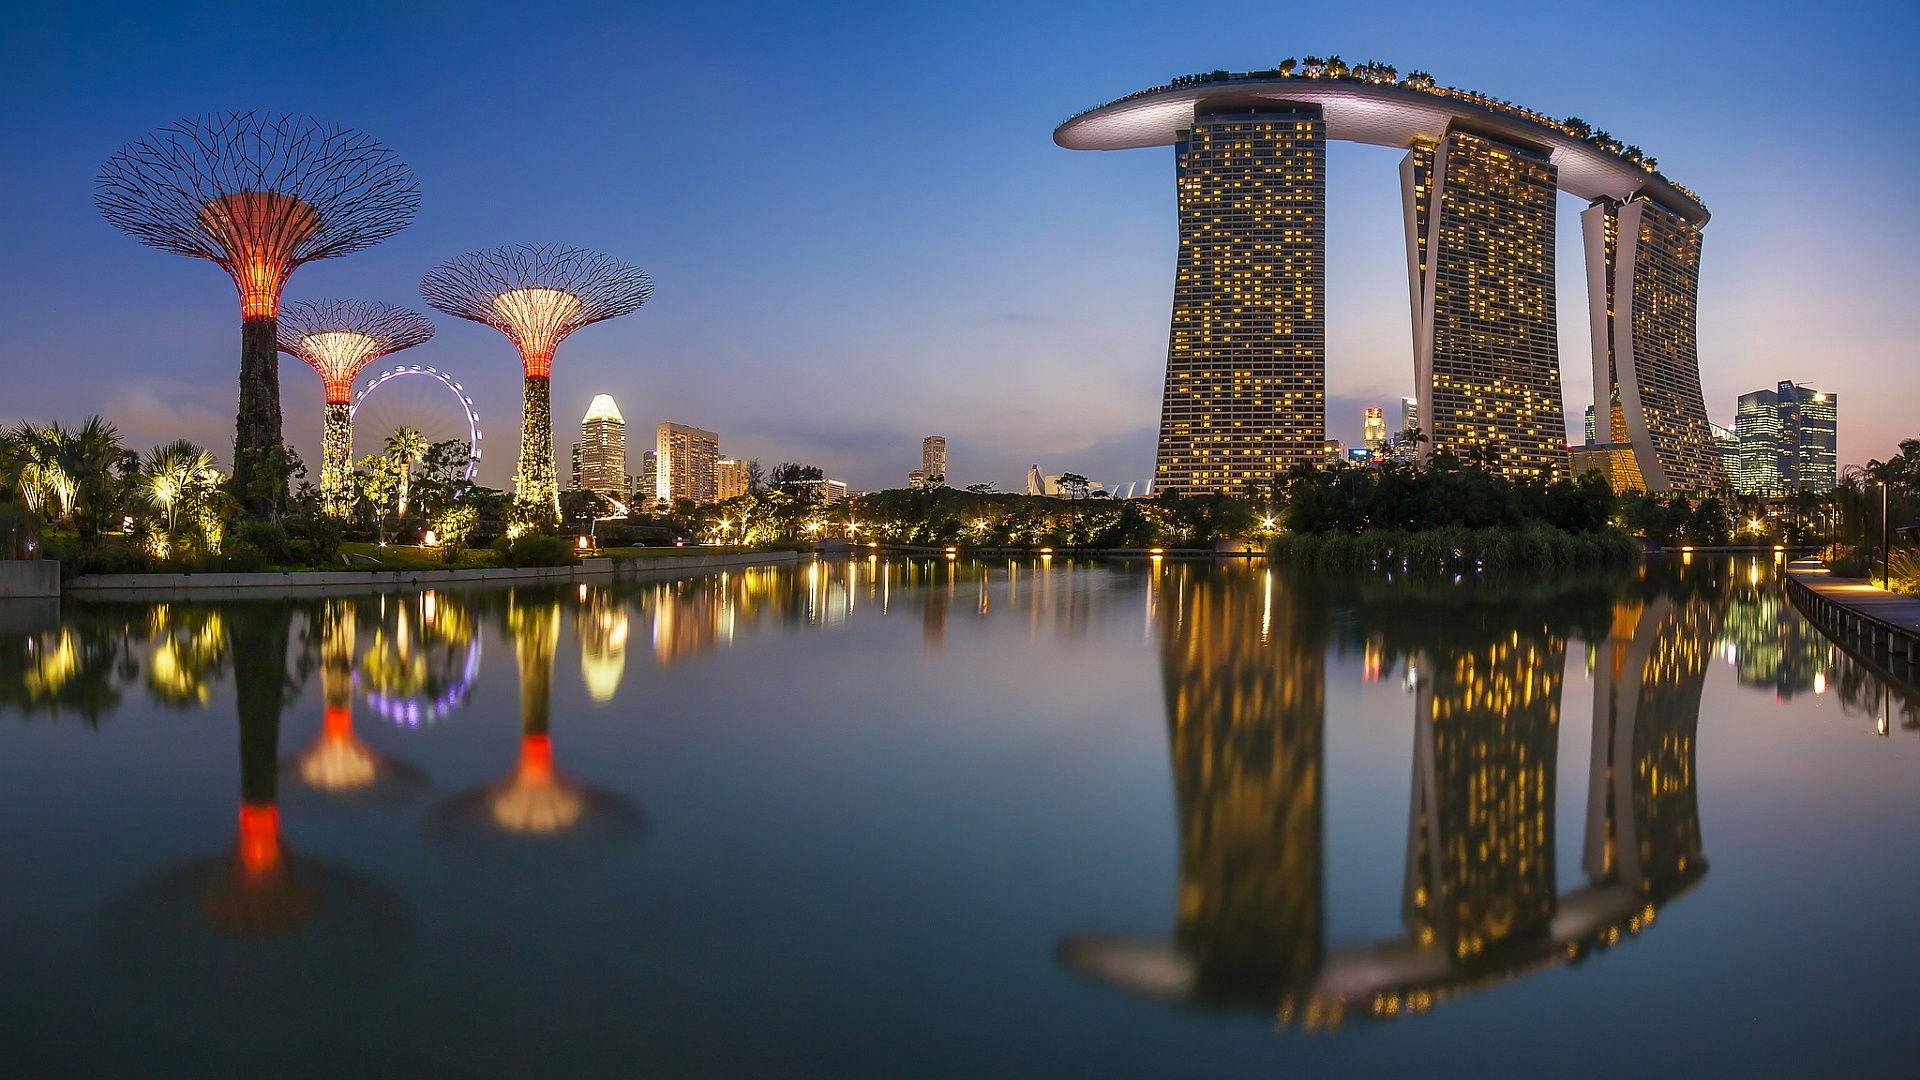 Singapore wallpapers best wallpapers for Wallpaper home singapore